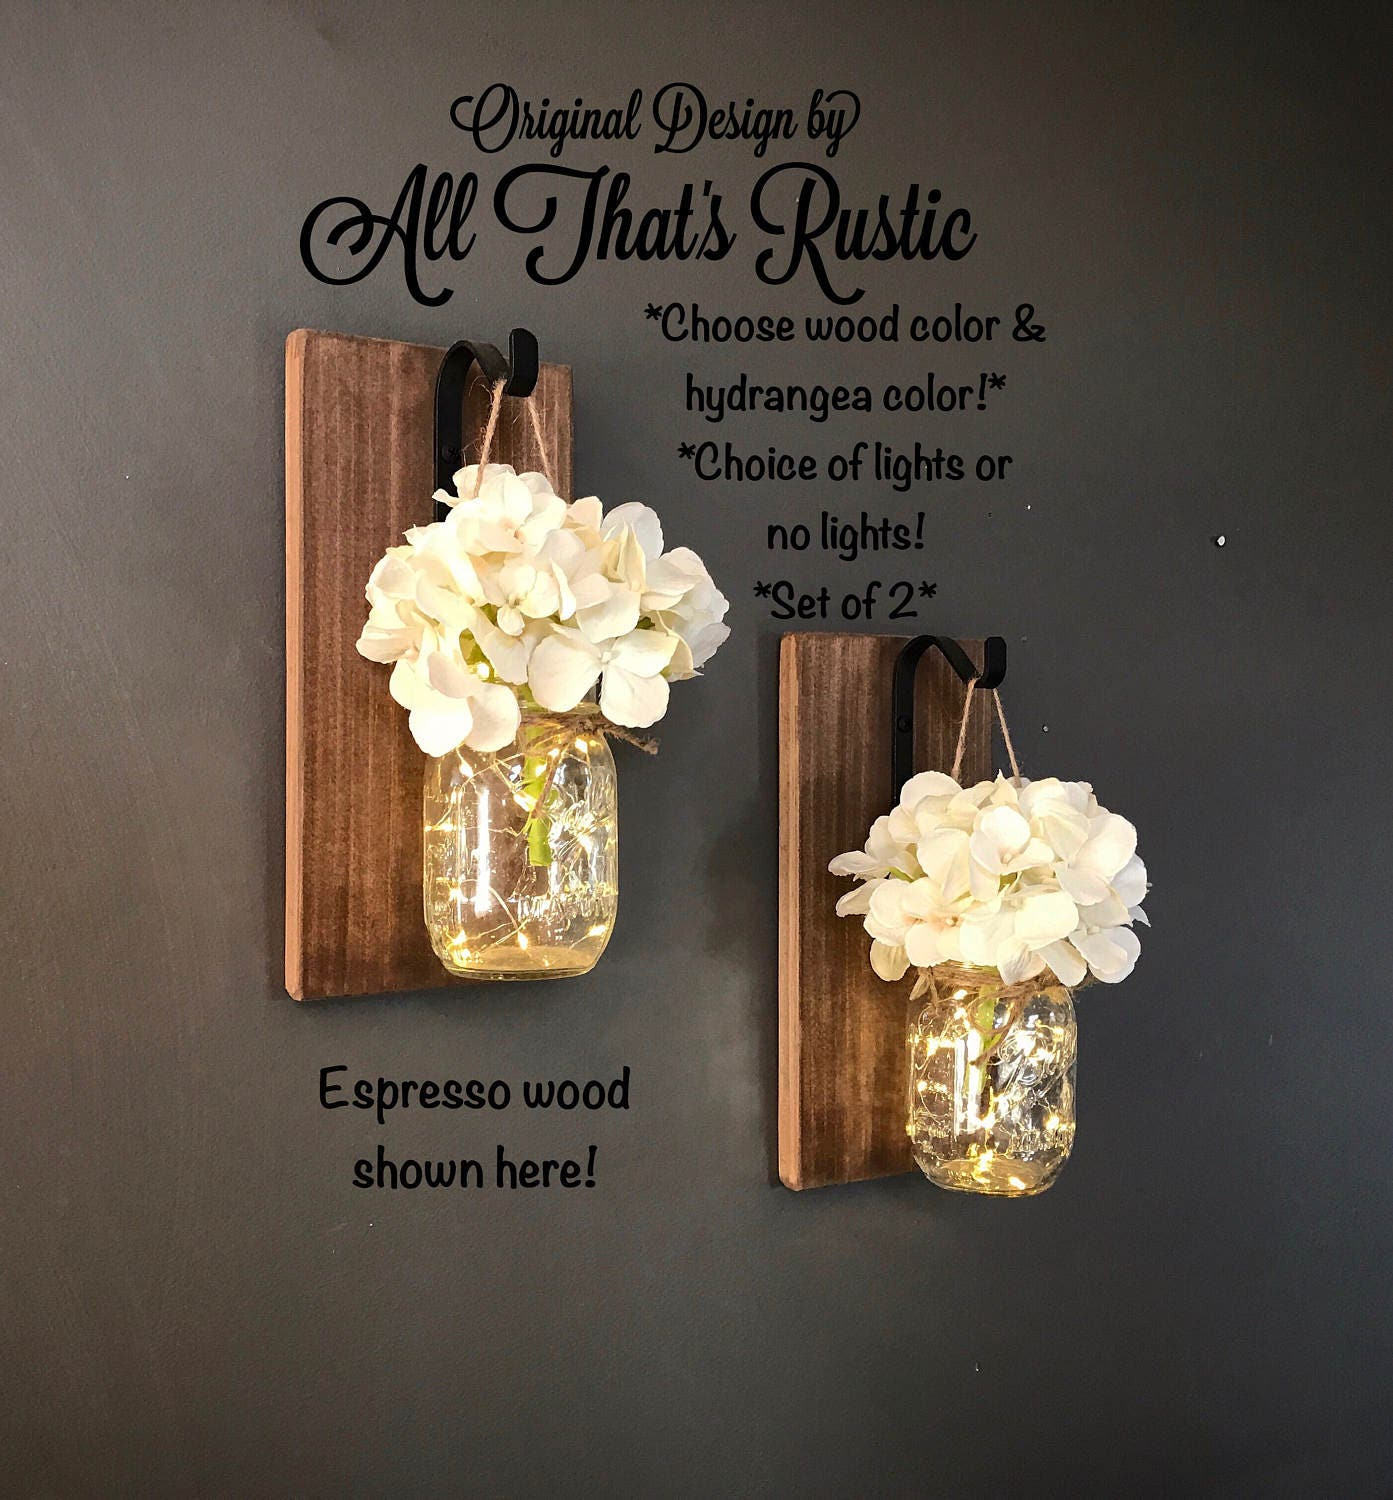 What To Put In Mason Jars For Decoration: Rustic Home Decor Home & Living Set Of 2 Hanging Mason Jar